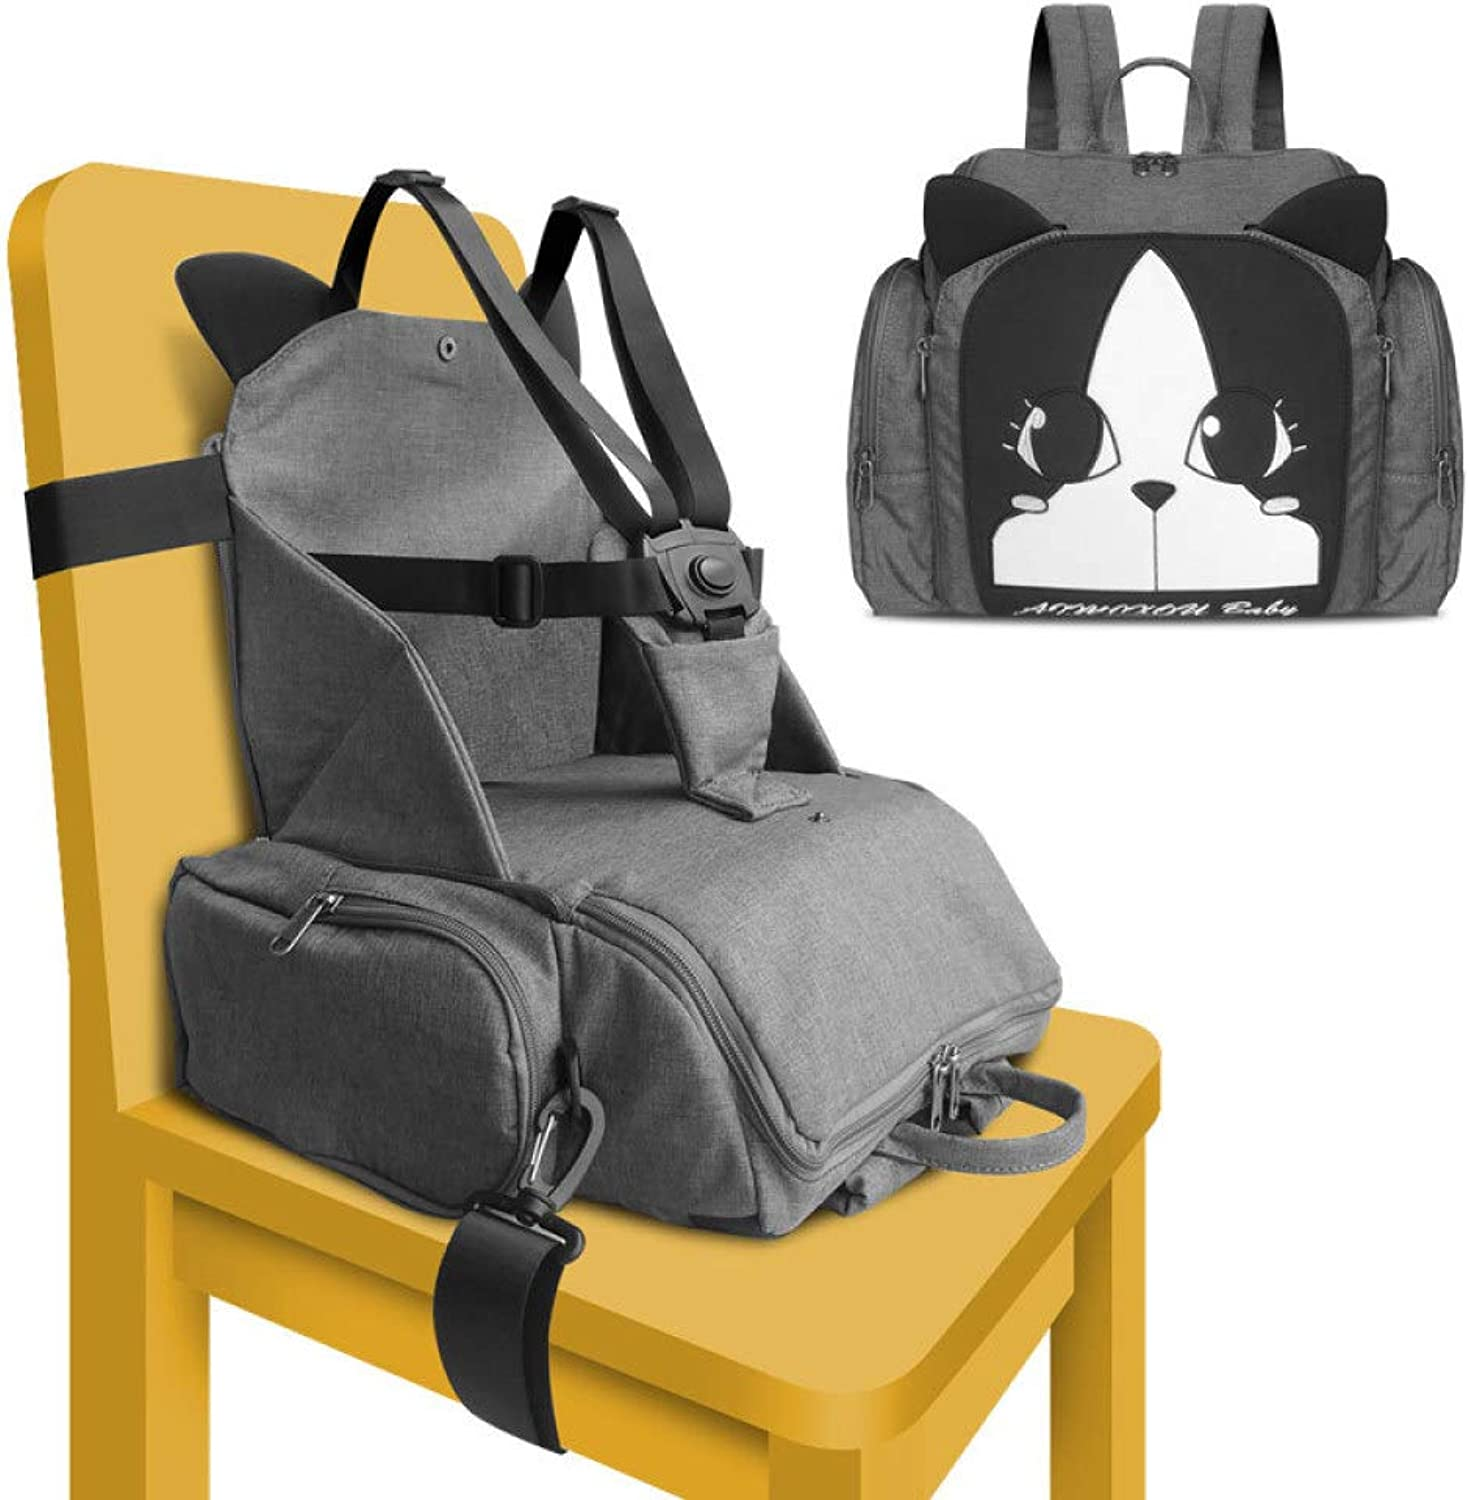 Baby Booster Seat, RUMIAO Portable Foldable Harness Baby Toddler Infant Dining Chair On The Go Travel Storage Chair,Grey